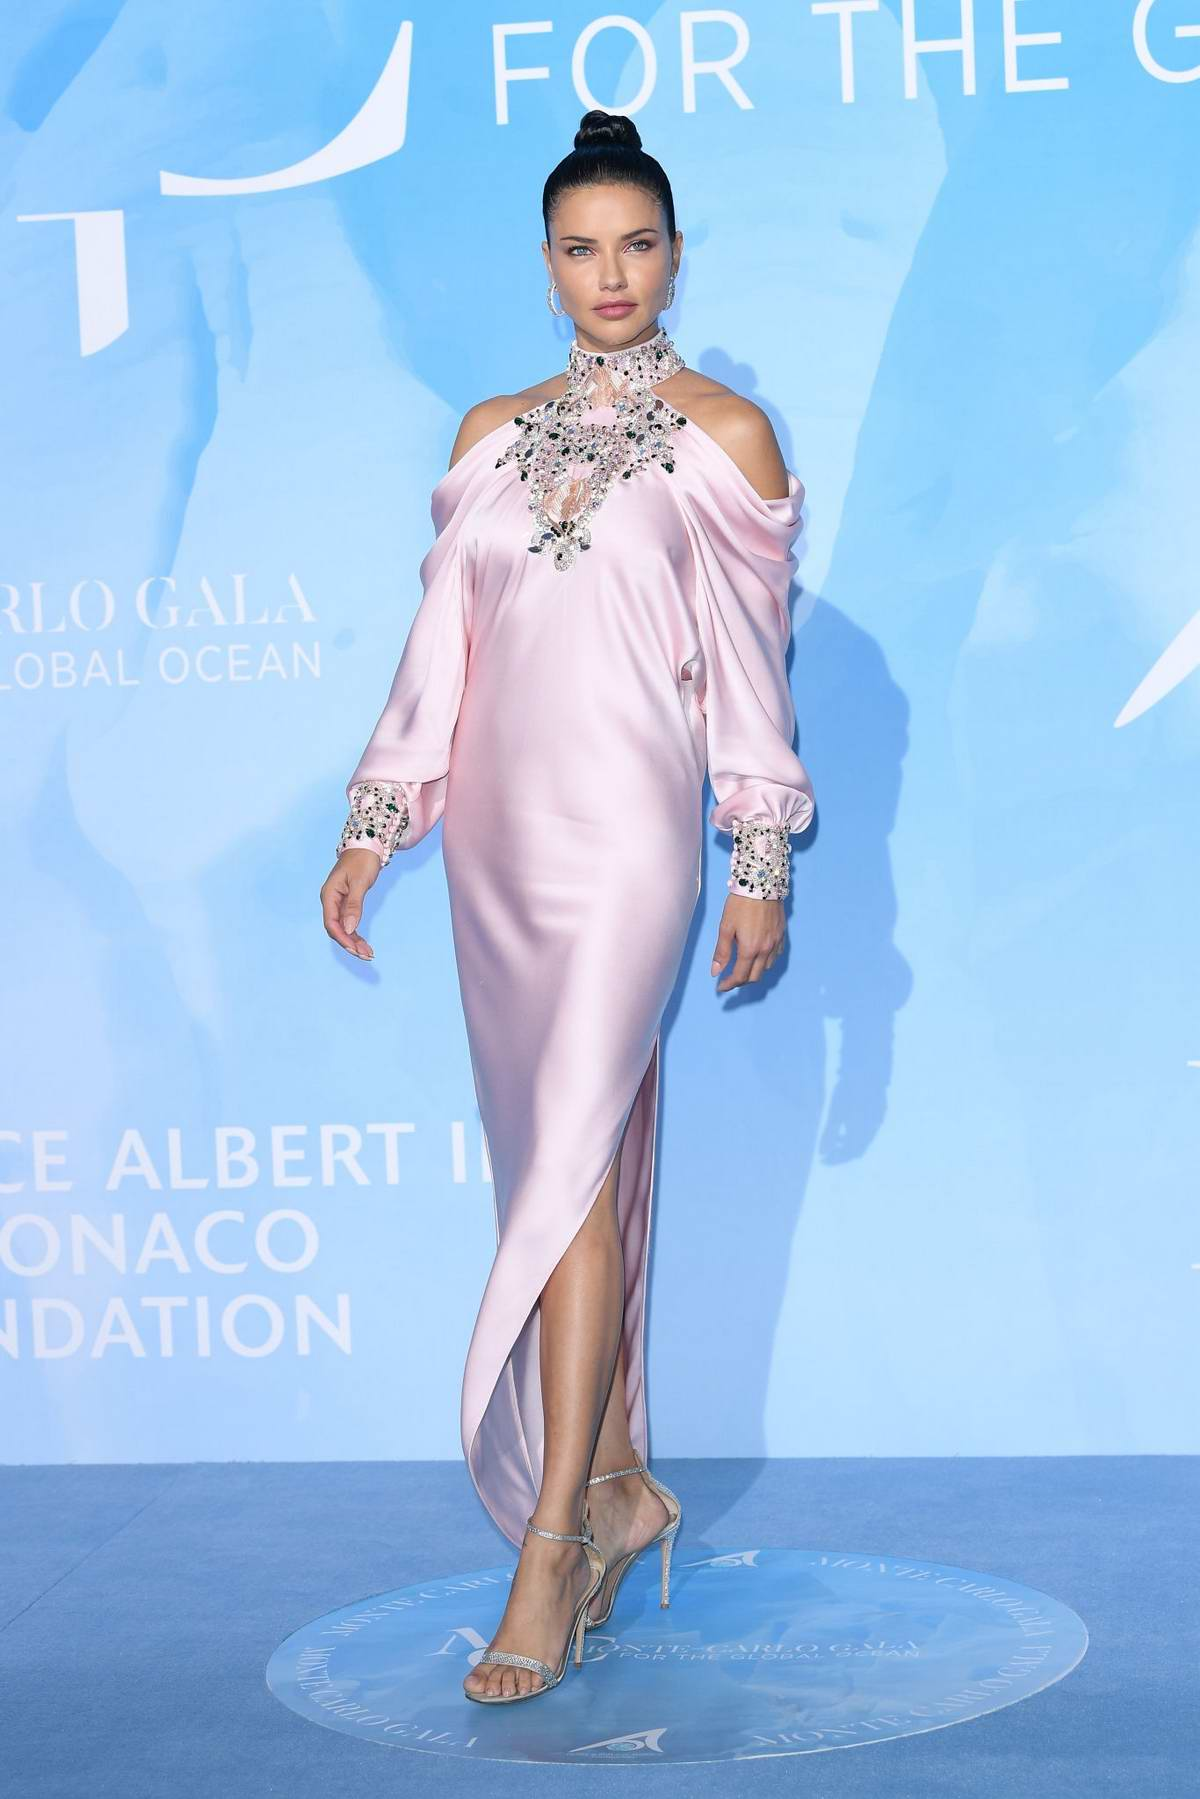 Adriana Lima attends the Gala for the Global Ocean in Monte Carlo, Monaco